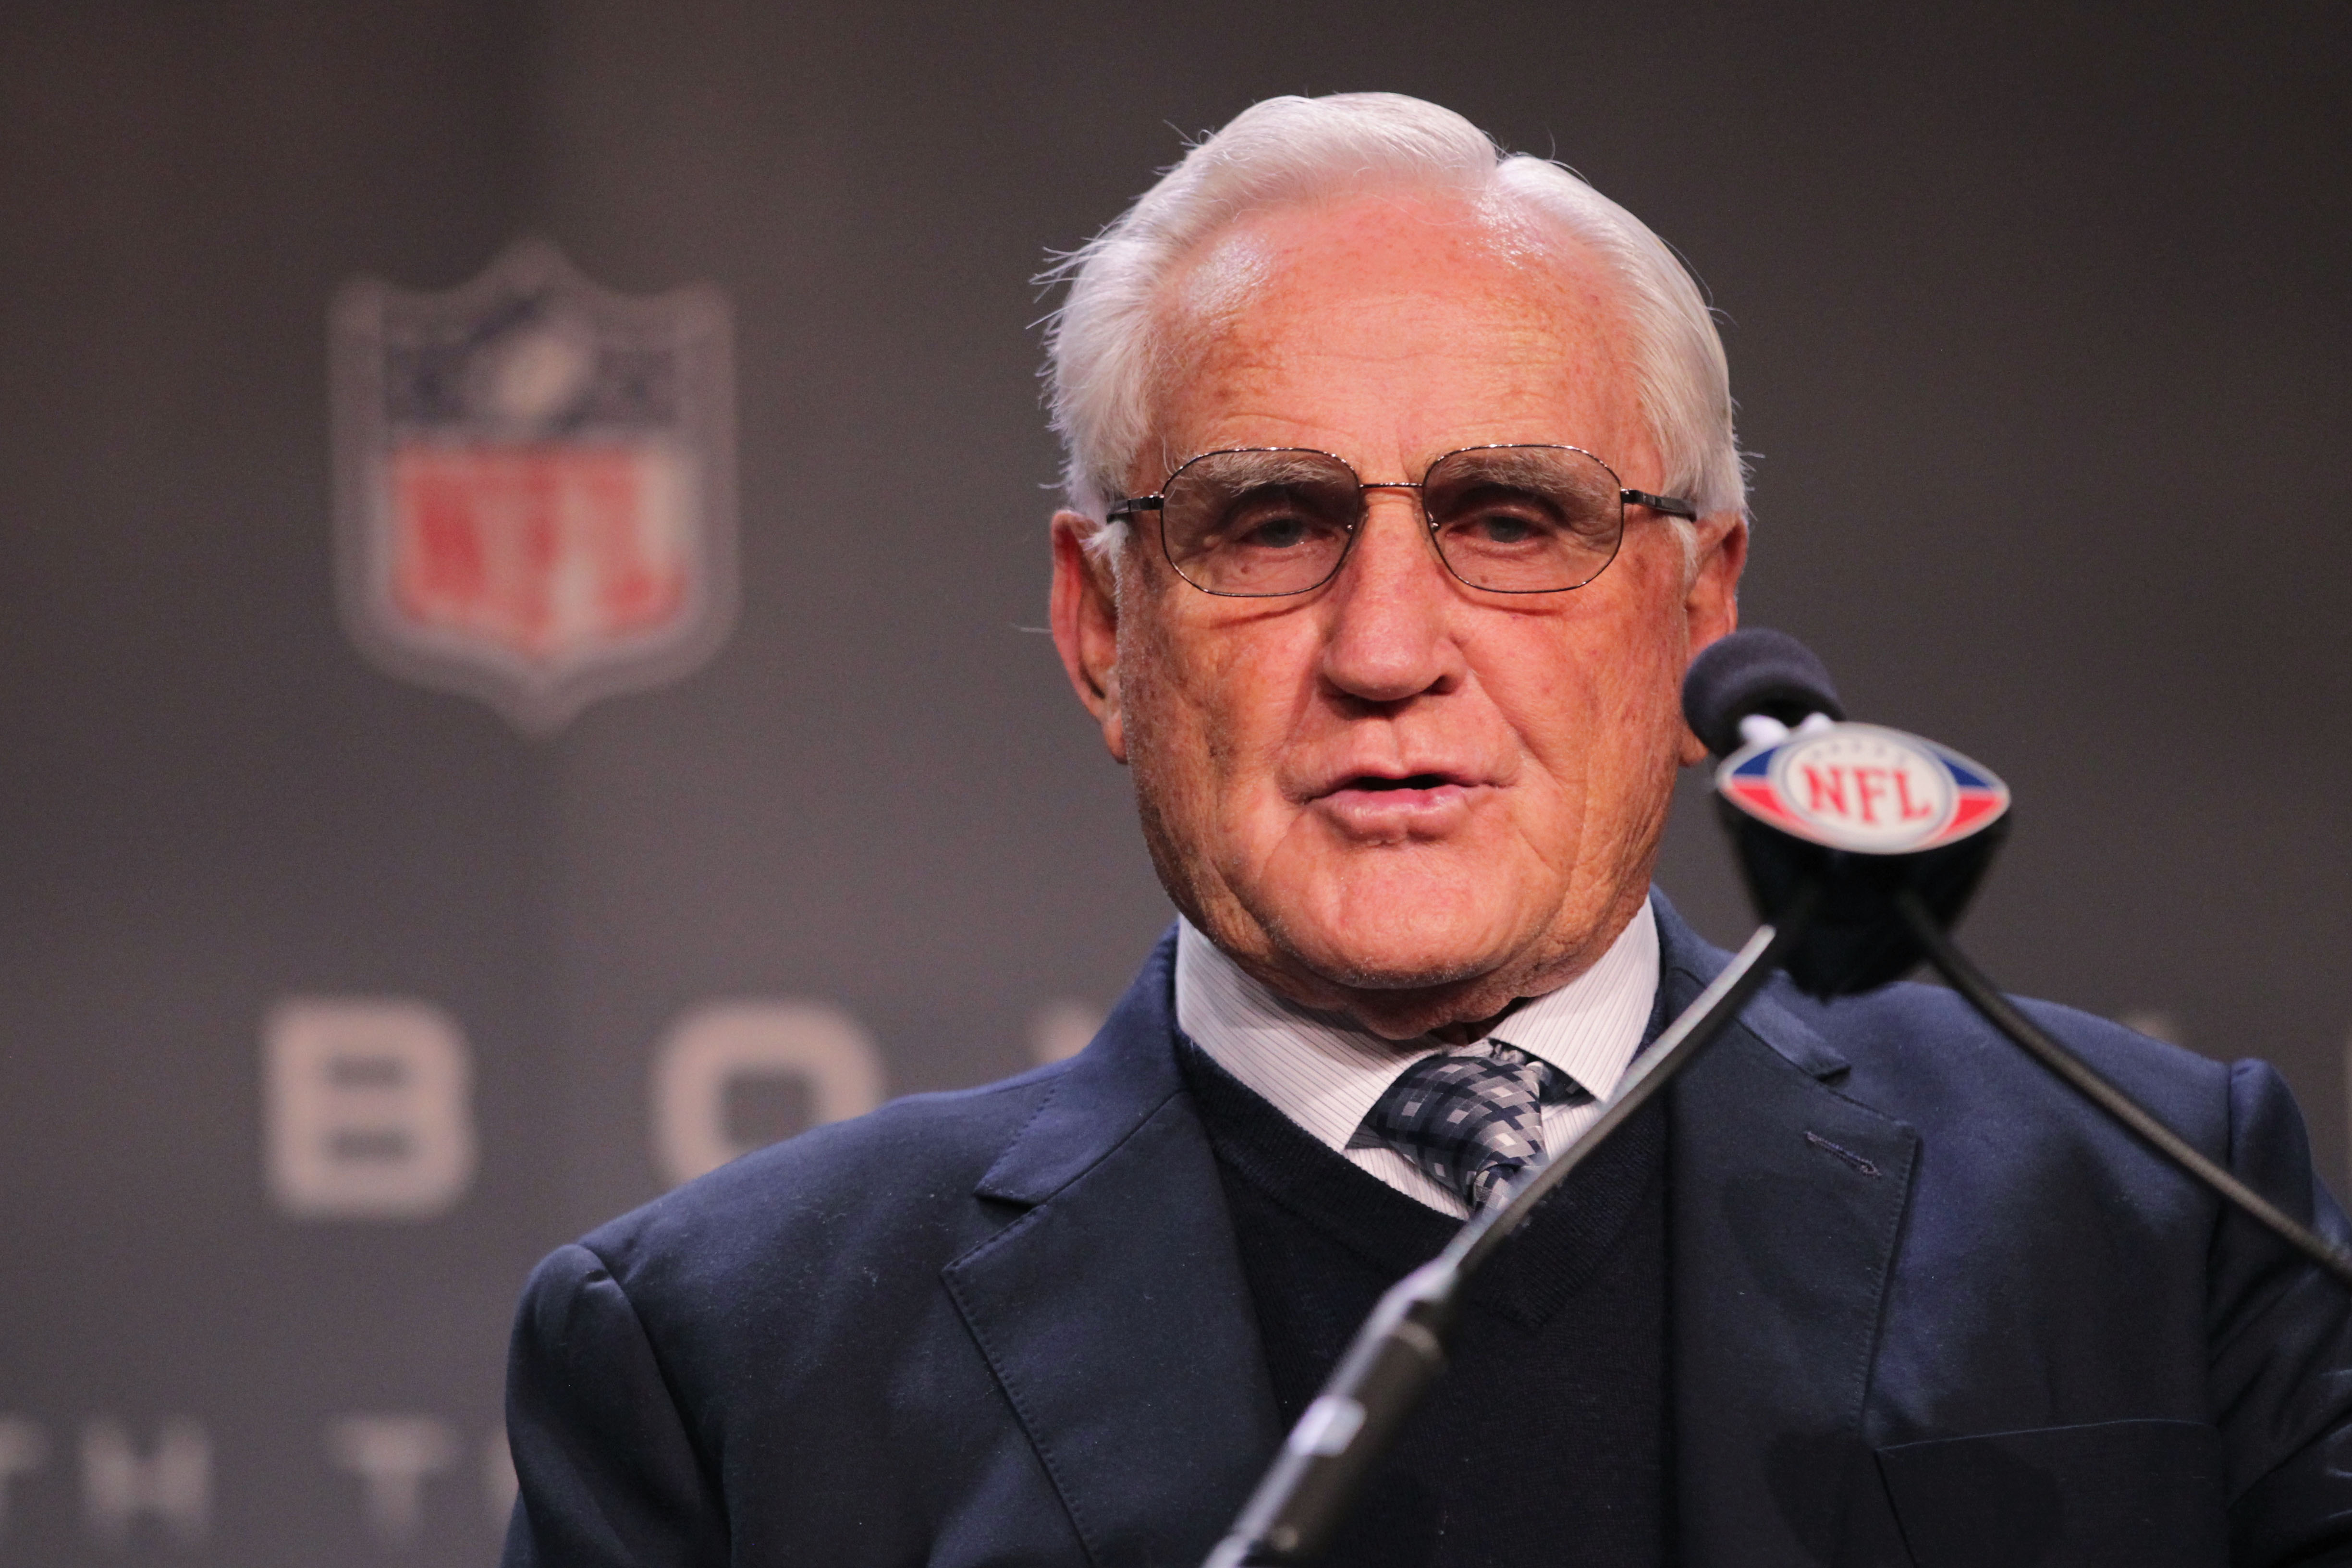 DALLAS, TX - FEBRUARY 04:  Former Miami Dolphins head coach Don Shula speaks during a press conference where he presented the Don Shula NFL Coach of the Year Award to Madison High School Head Football Coach Ray Seals at the Super Bowl XLV media center on